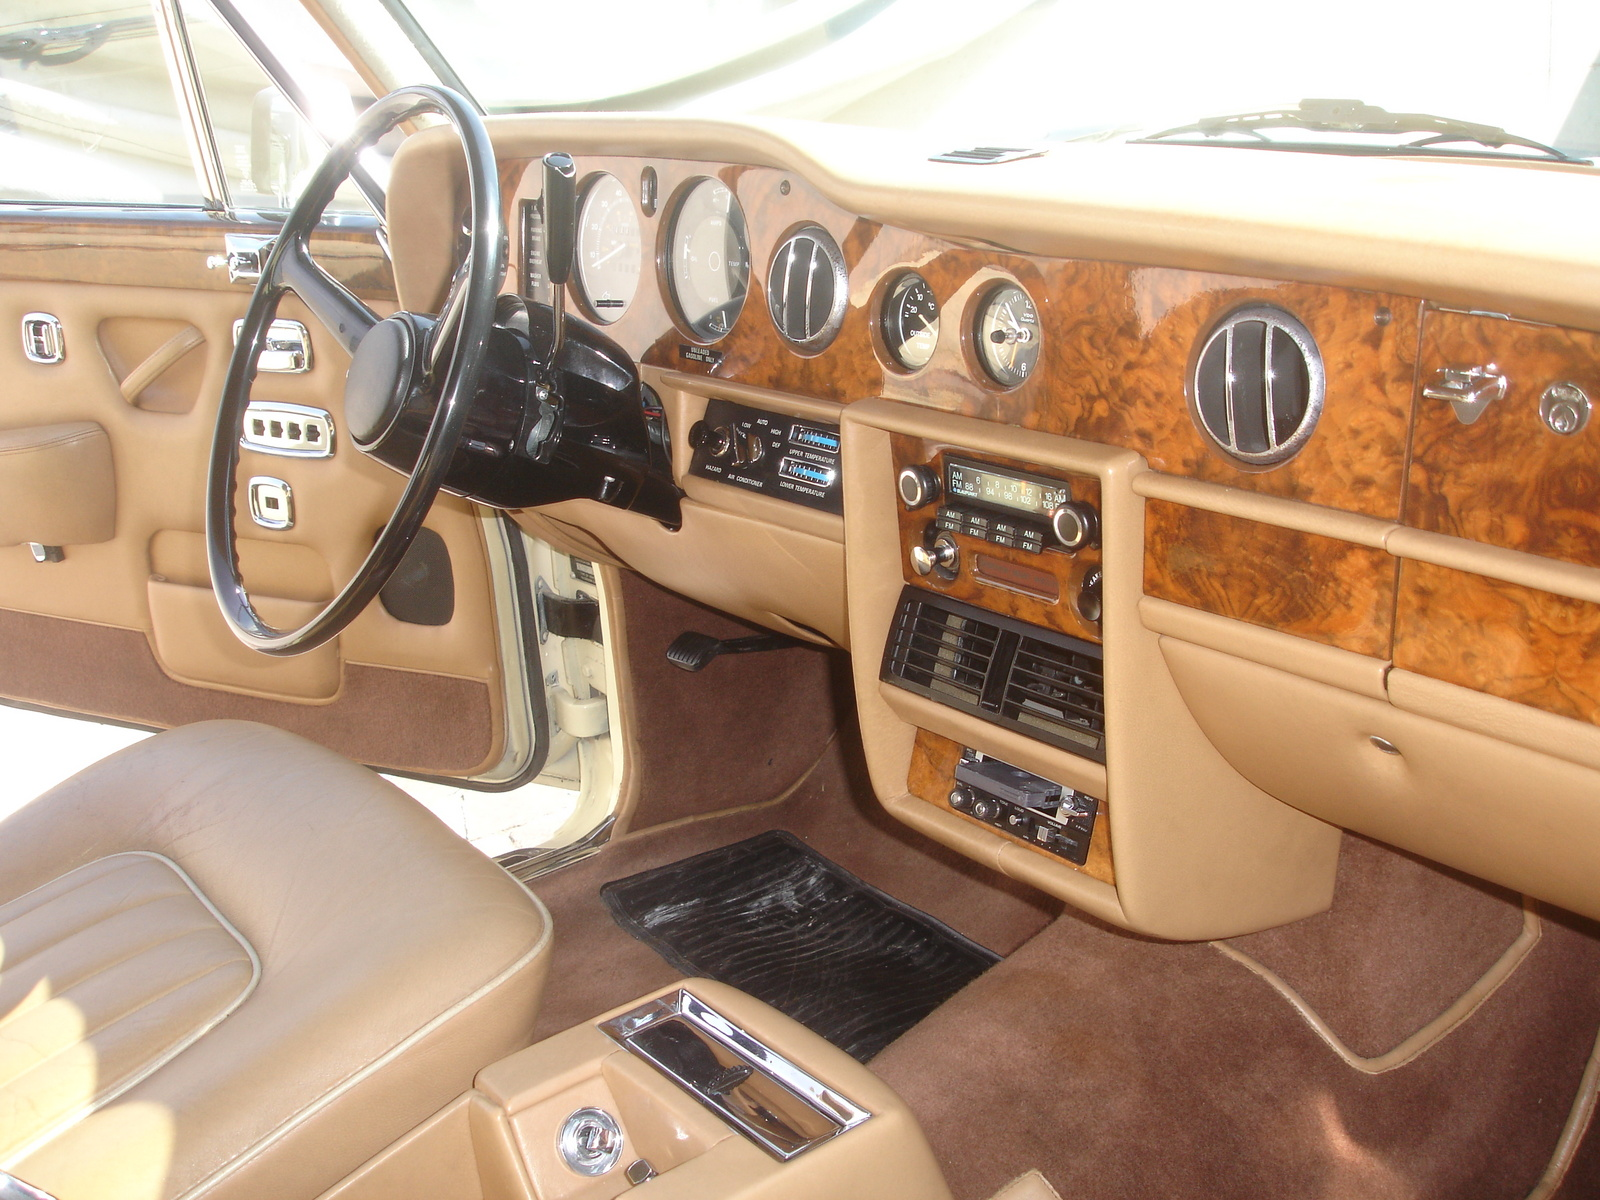 1979 Rolls-Royce Silver Shadow - Pictures - CarGurus